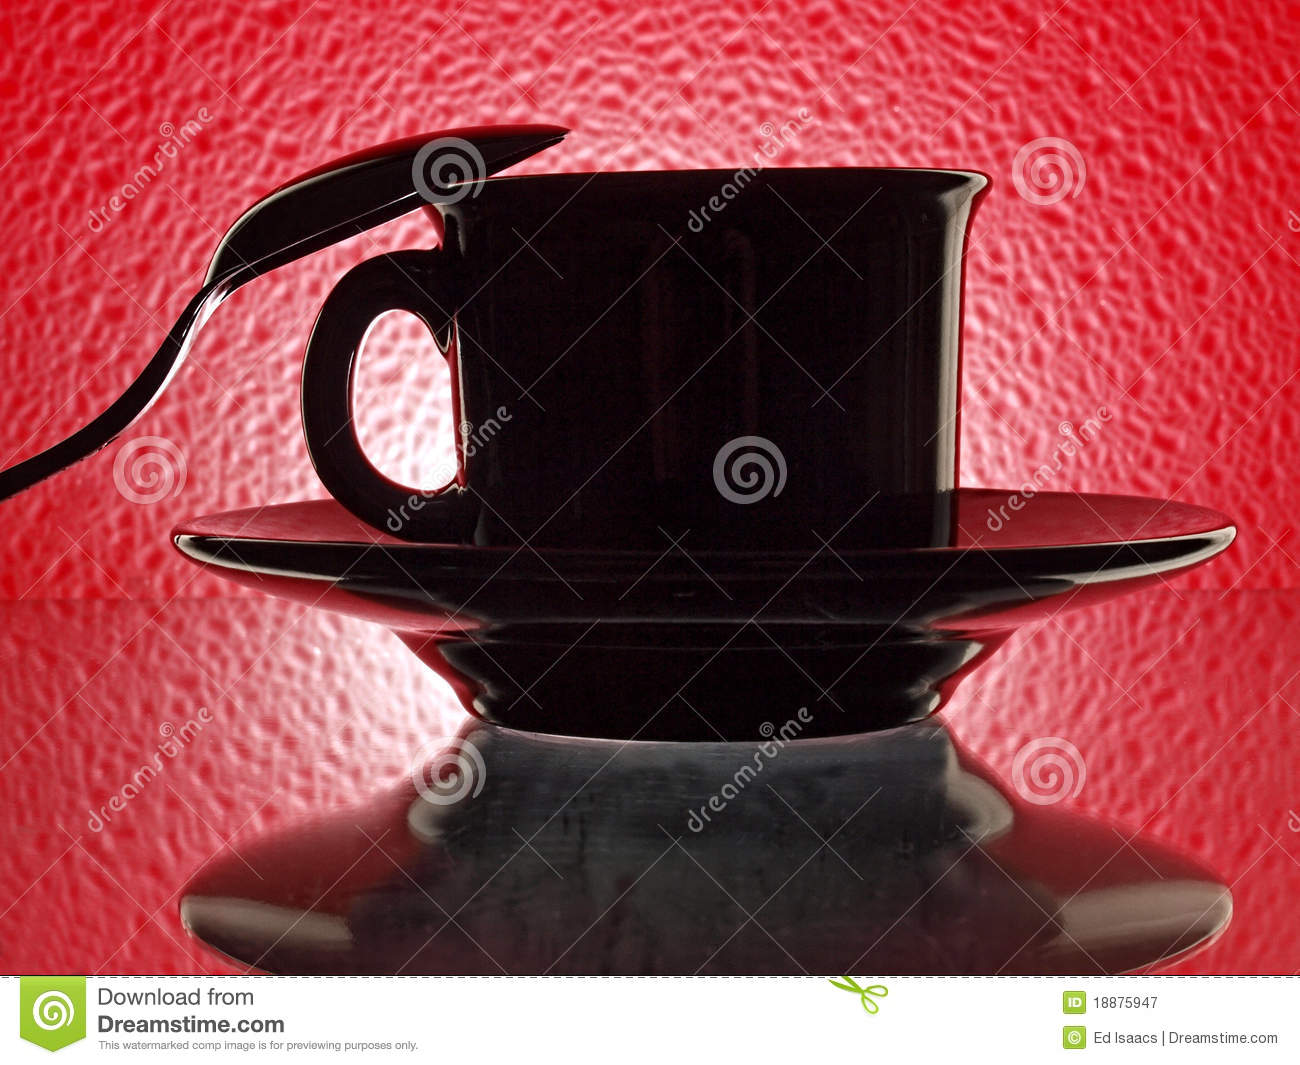 Black Cup, Saucer snd Spoon